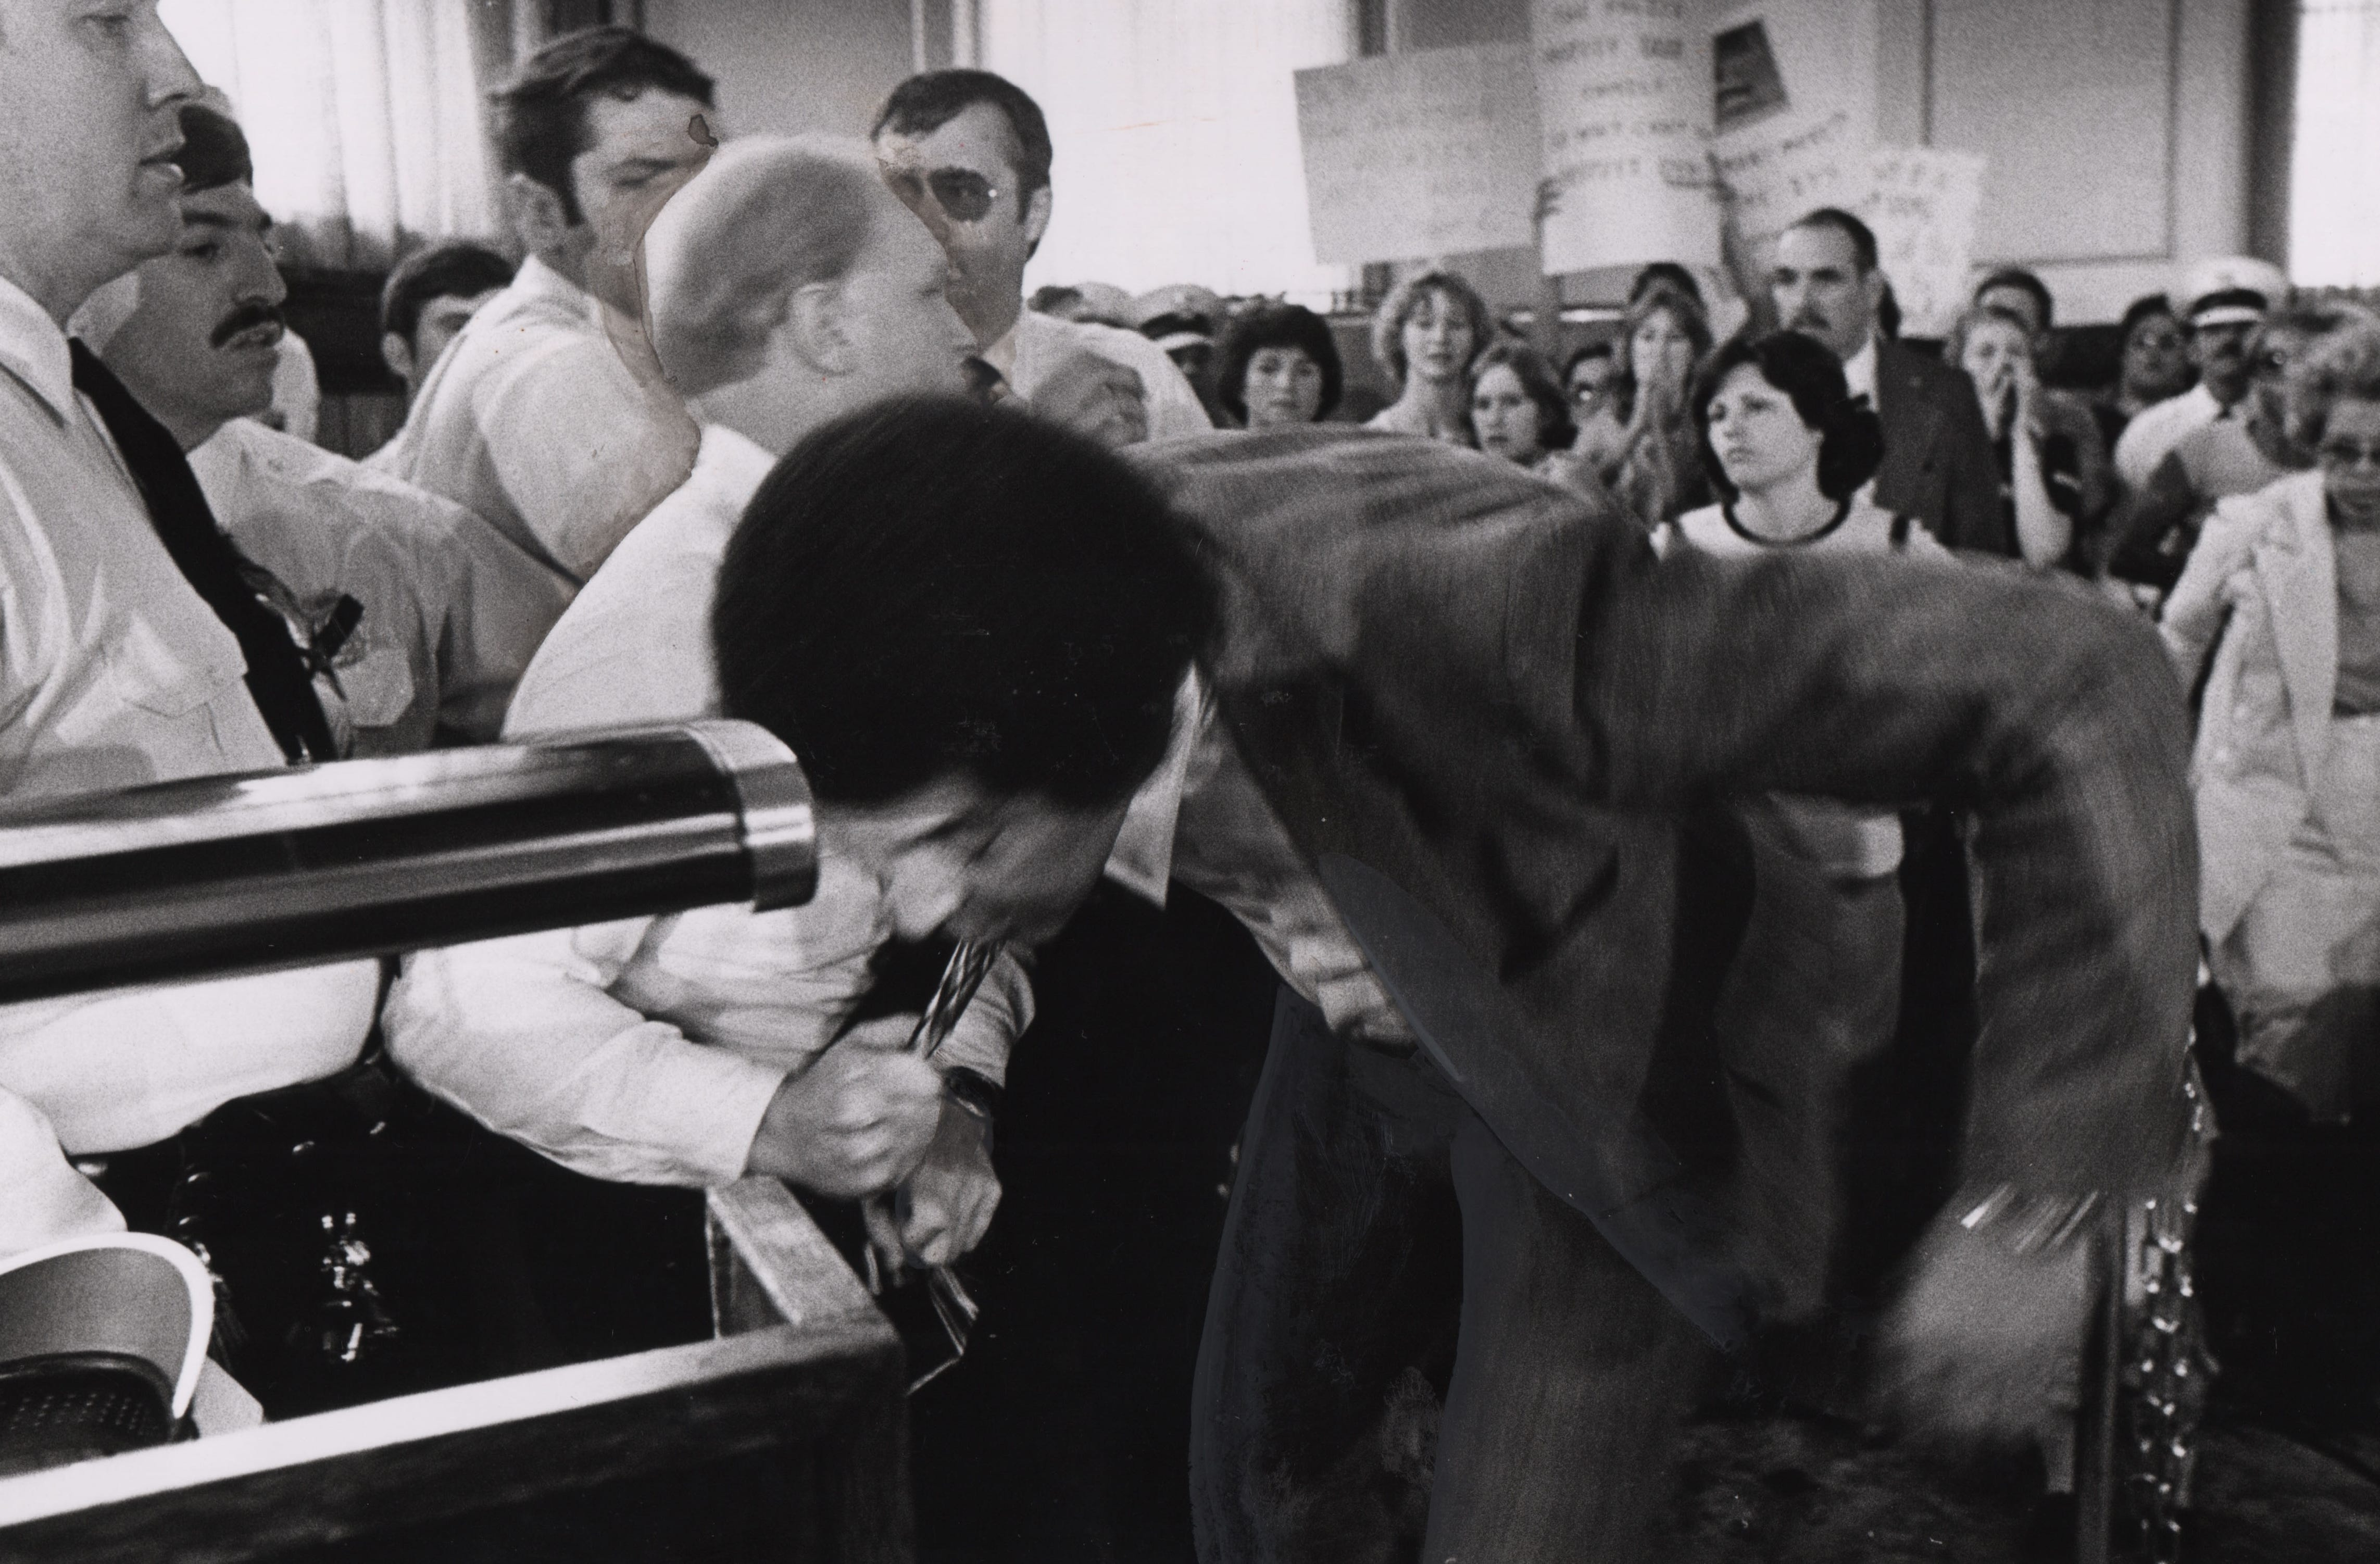 J. C. Johnson, president of the Cincinnati Chapter of the NAACP was jerked down by the necktie before a City Council meeting on May 10, 1979.